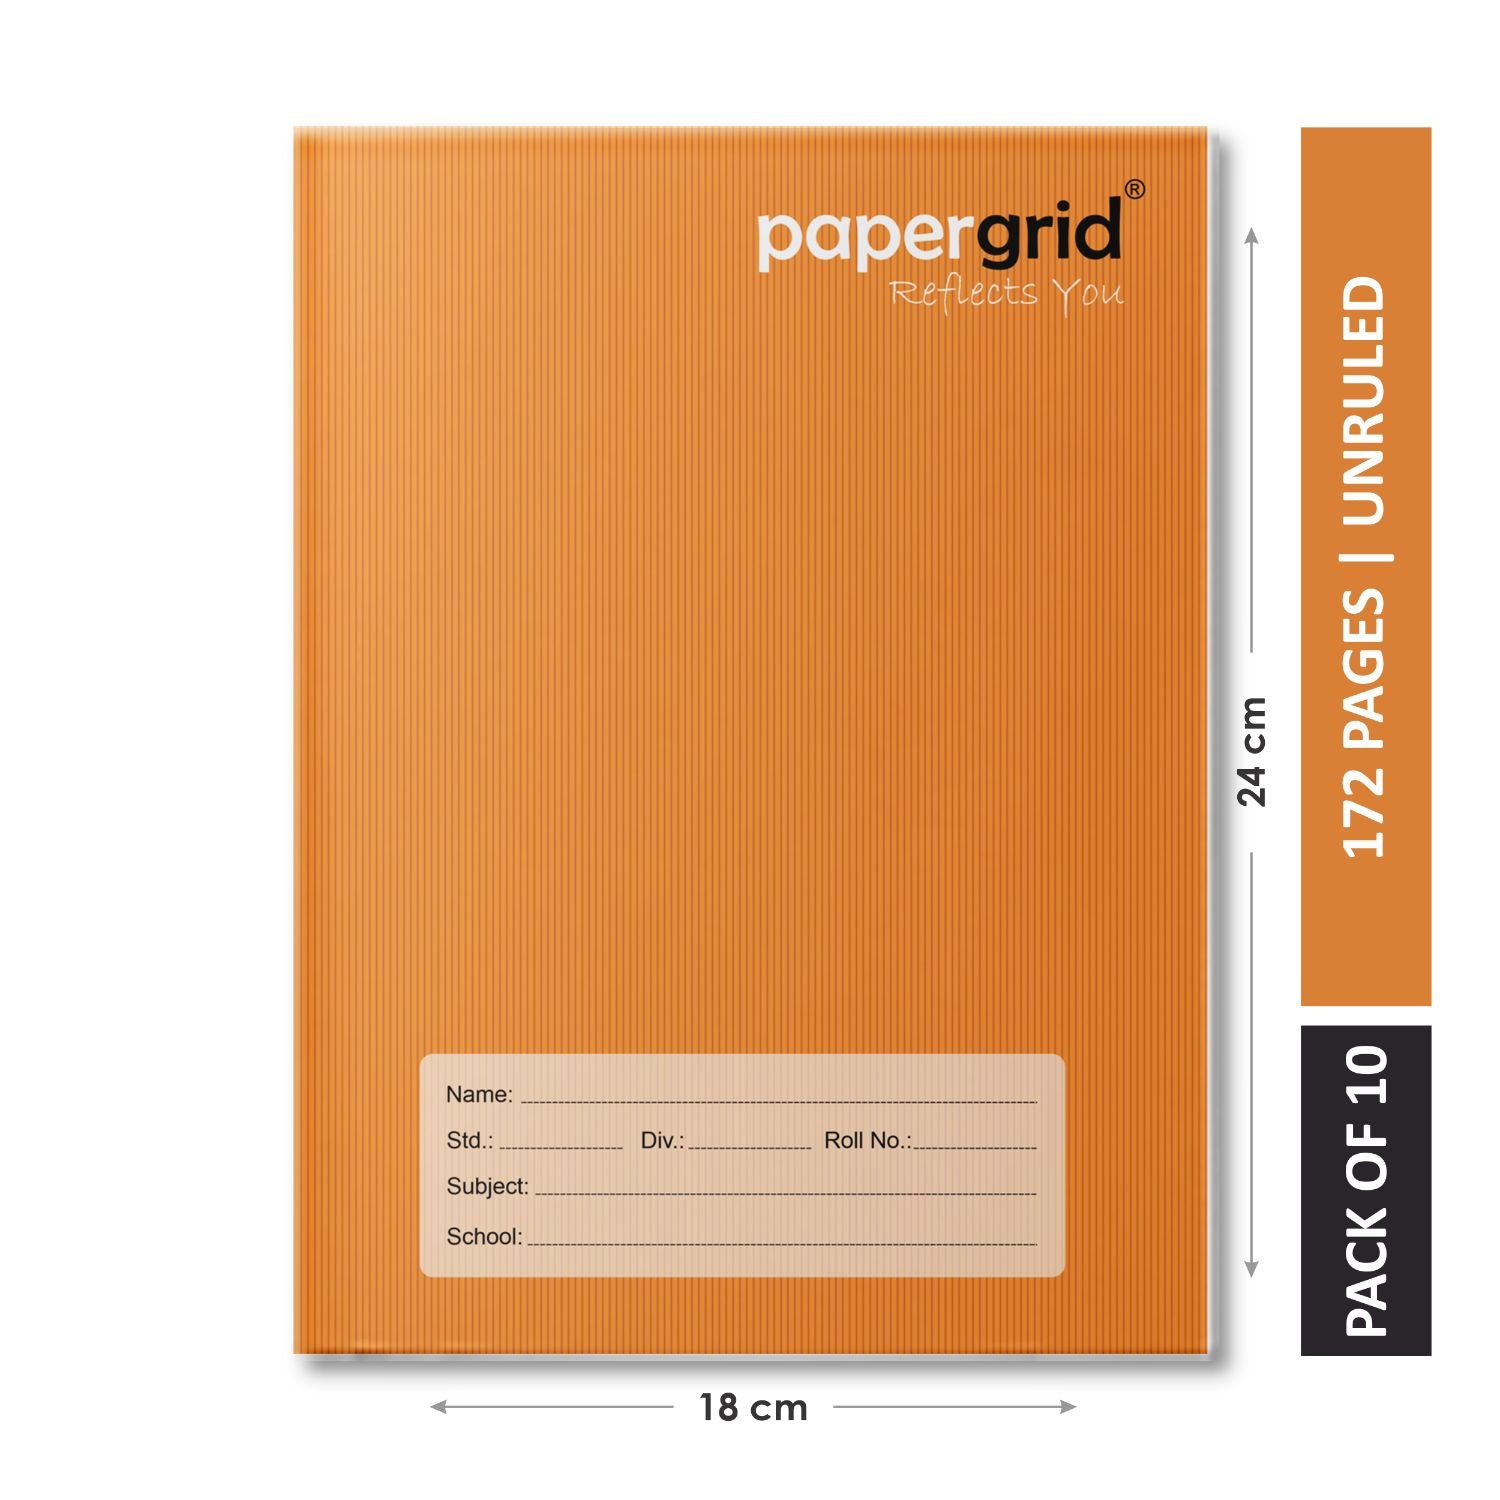 Papergrid Notebook - Brown Cover, King Size (24 cm x 18 cm), Unruled, 172 Pages, Soft Cover - Pack of 10